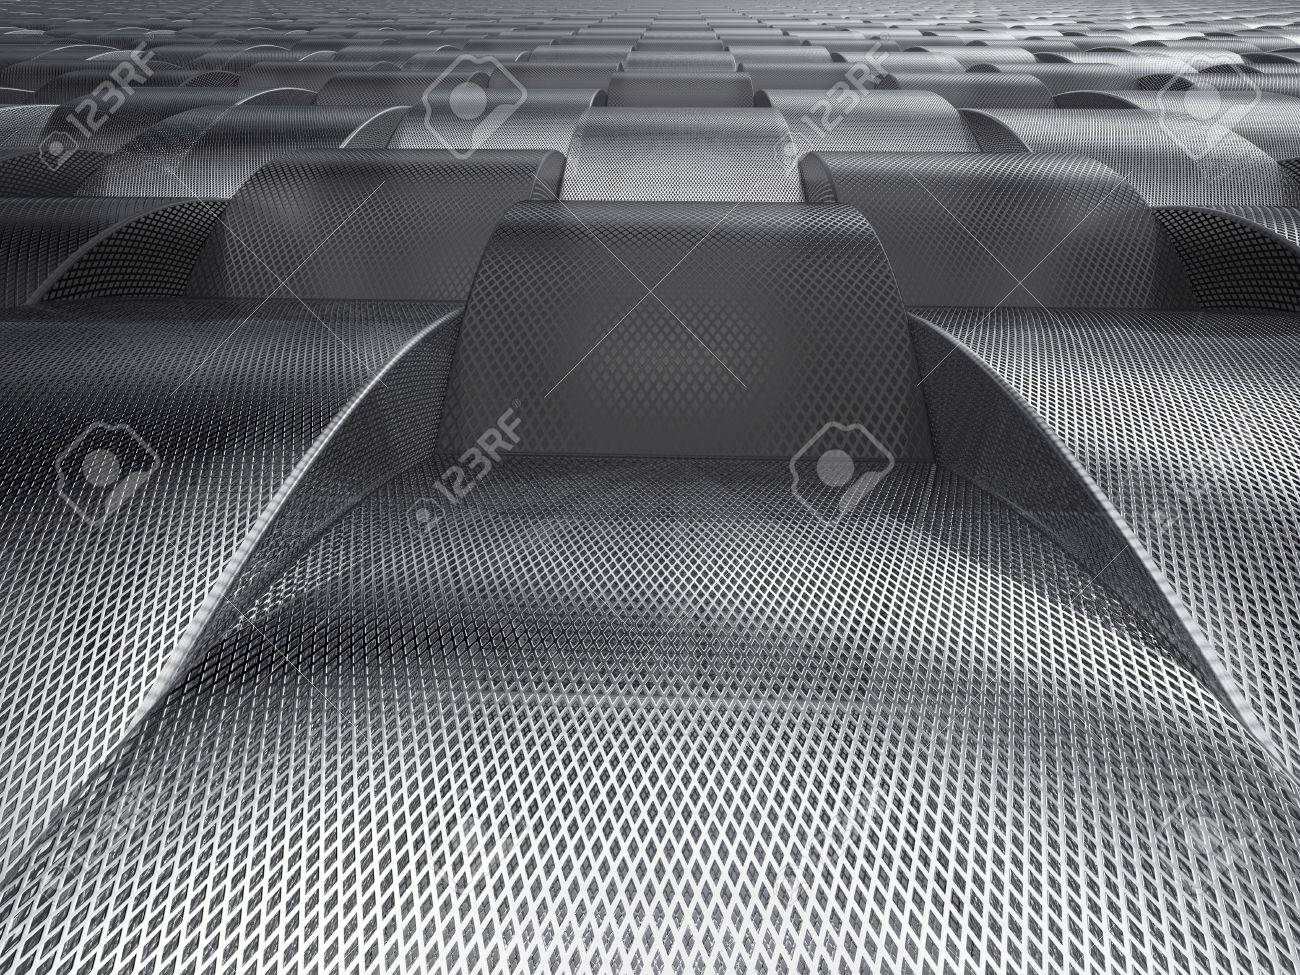 Abstract mesh pattern background Stock Photo - 11030503